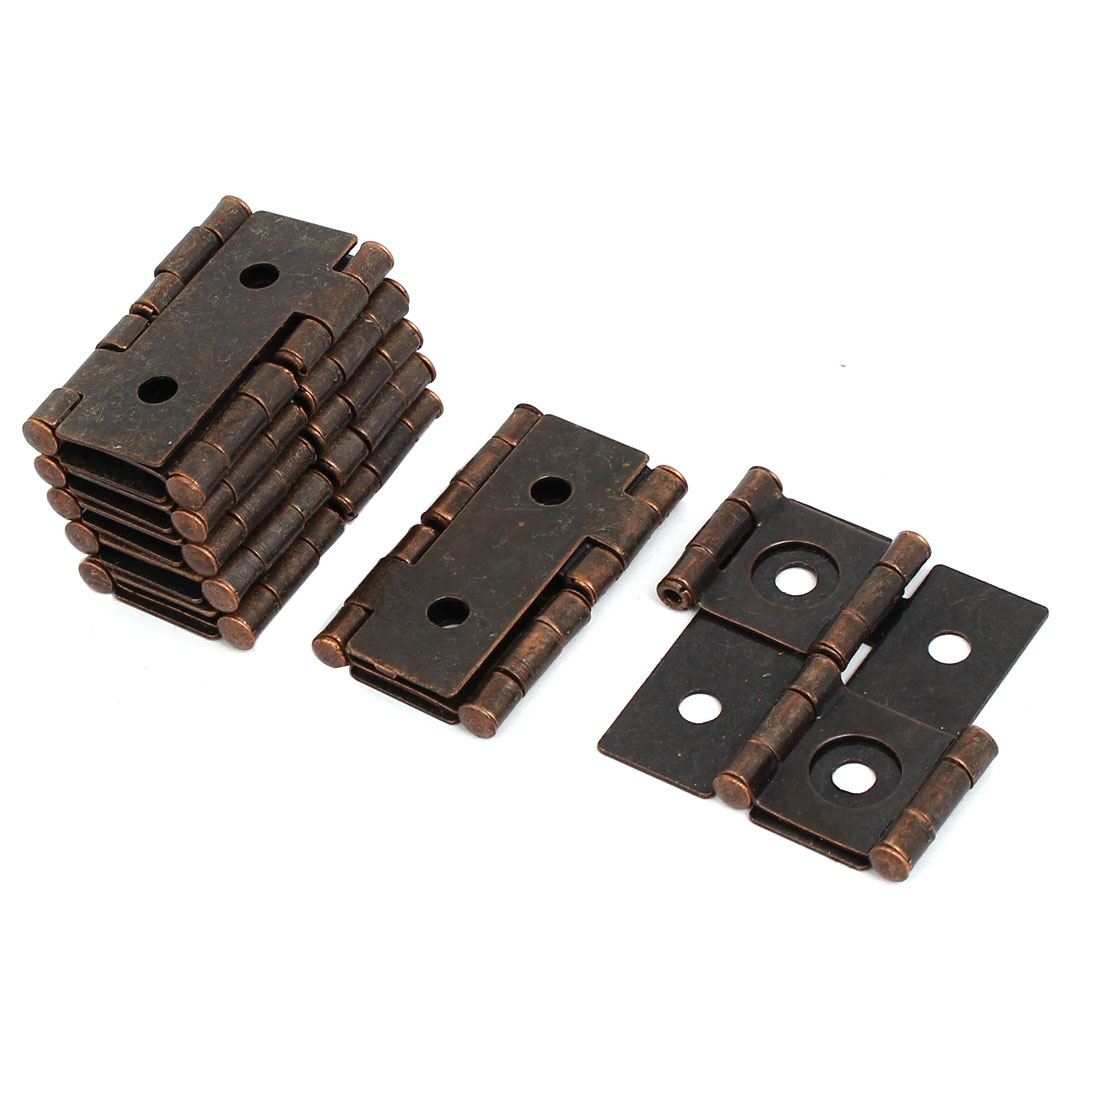 47mmx45mmx5mm Antique Style Double Acting Folding Screen Hinge Copper Tone 8pcs